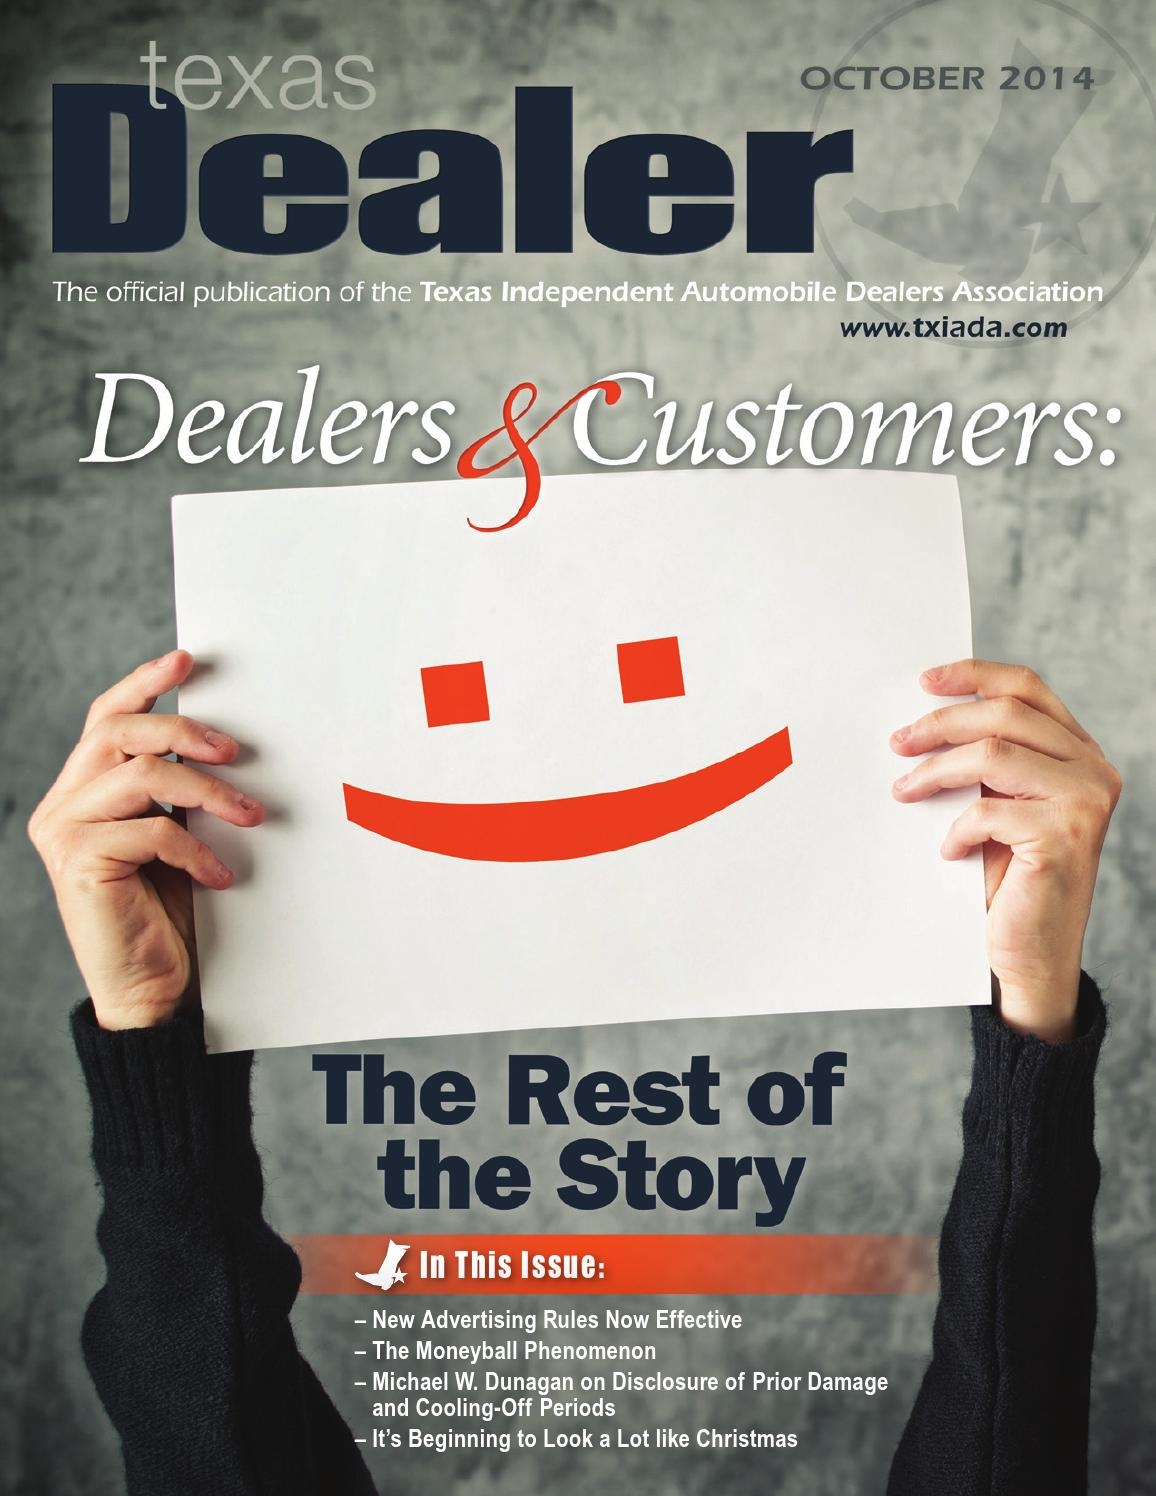 Texas Dealer, October 2014 by Texas Independent Auto Dealers Association - issuu